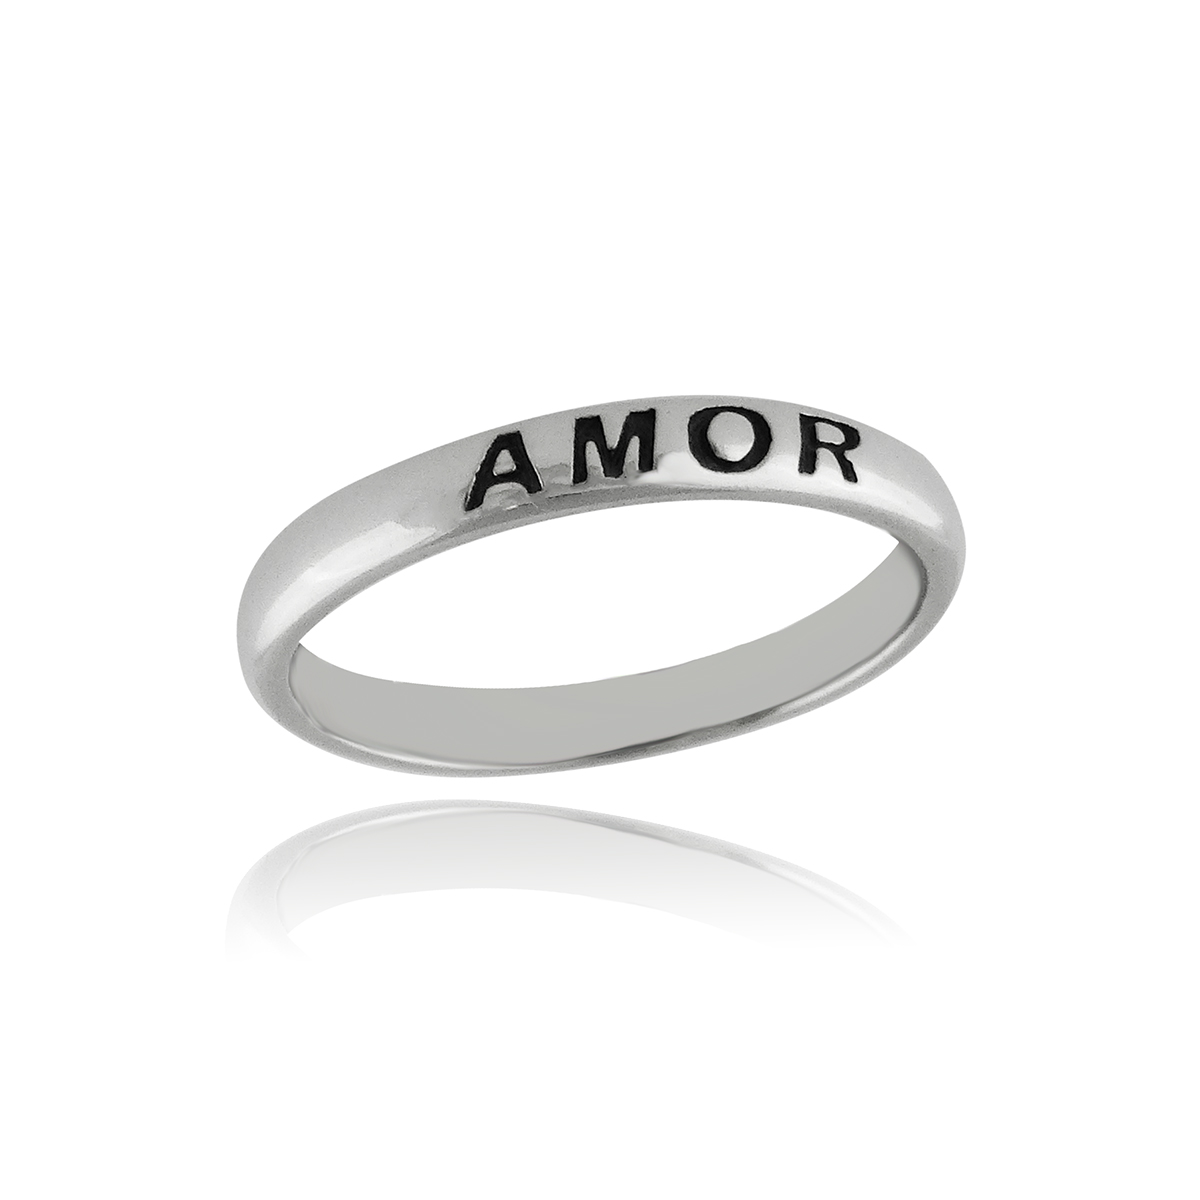 Amor Narrow Band RING - 925 Sterling Silver